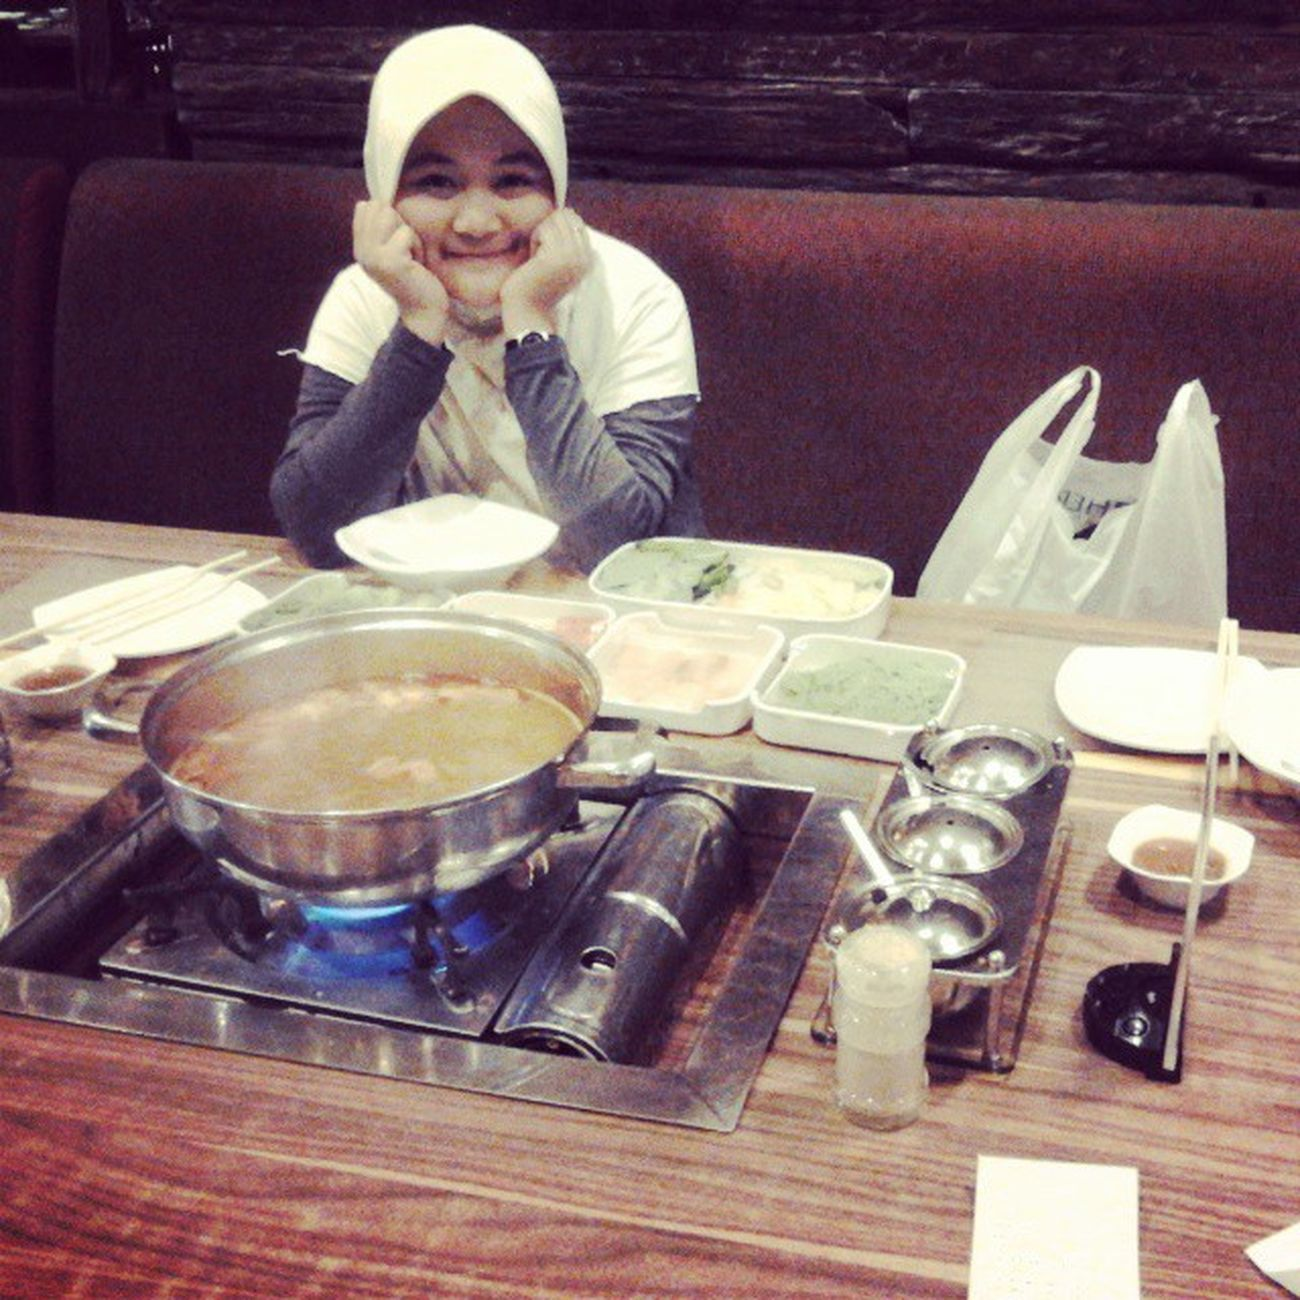 Dine with mine. Love you, wife. Dinner Moment Itasuki Shabu sirloin fillet soup bsd serpong tangerang banten instabanten indonesia living world livingworld alamsutera